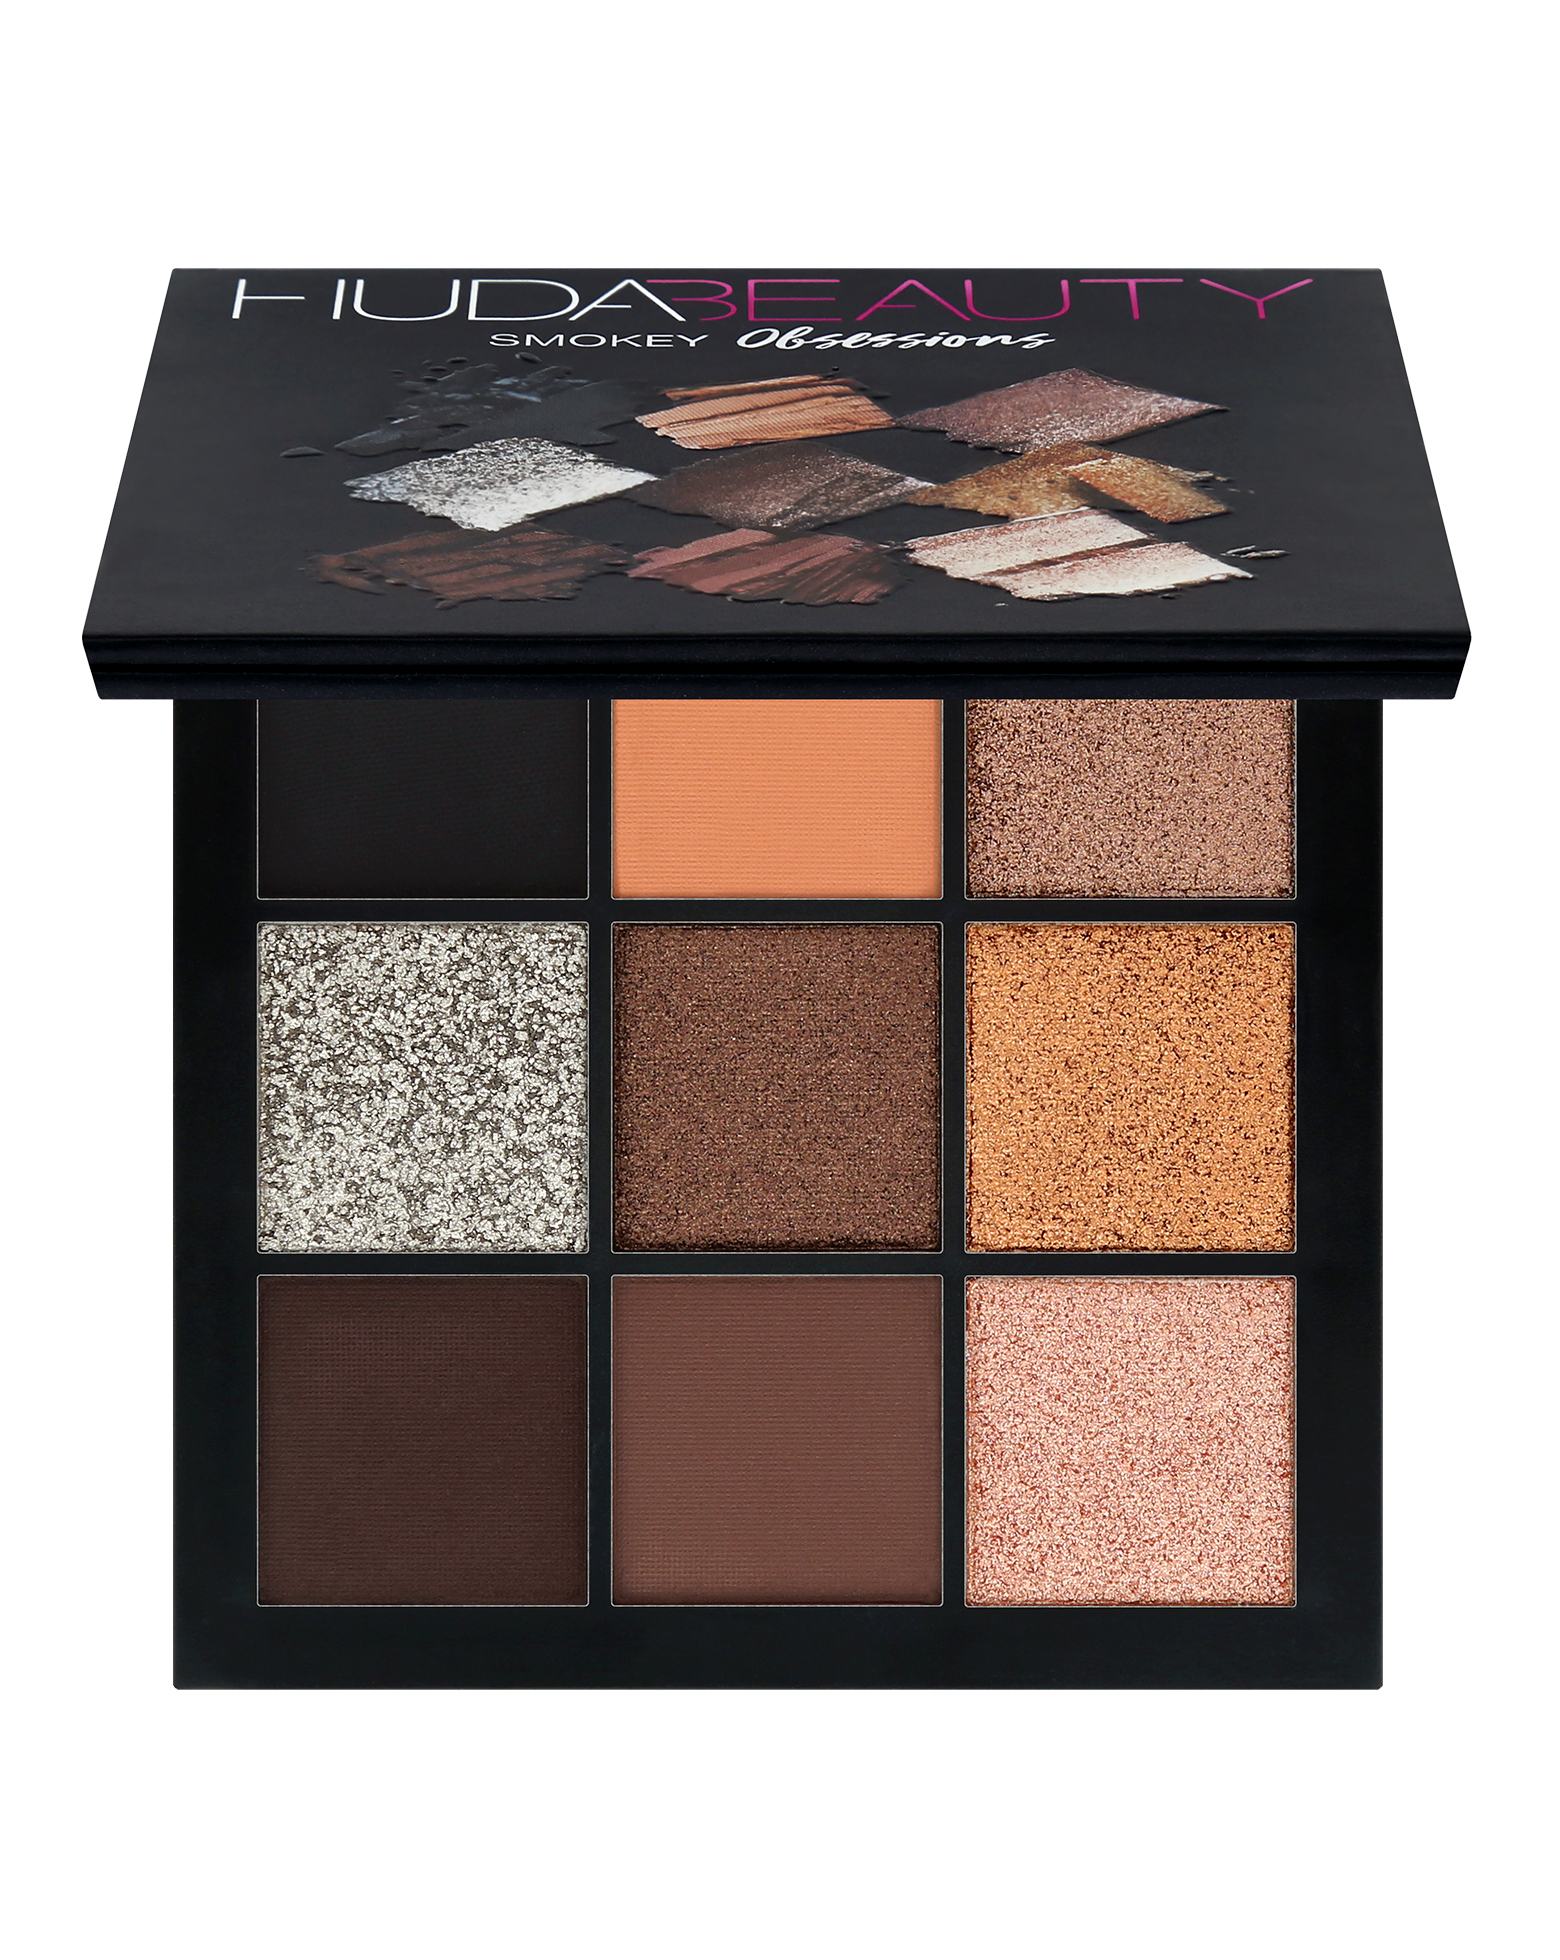 huda beauty smokey obsessions palette cult beauty. Black Bedroom Furniture Sets. Home Design Ideas